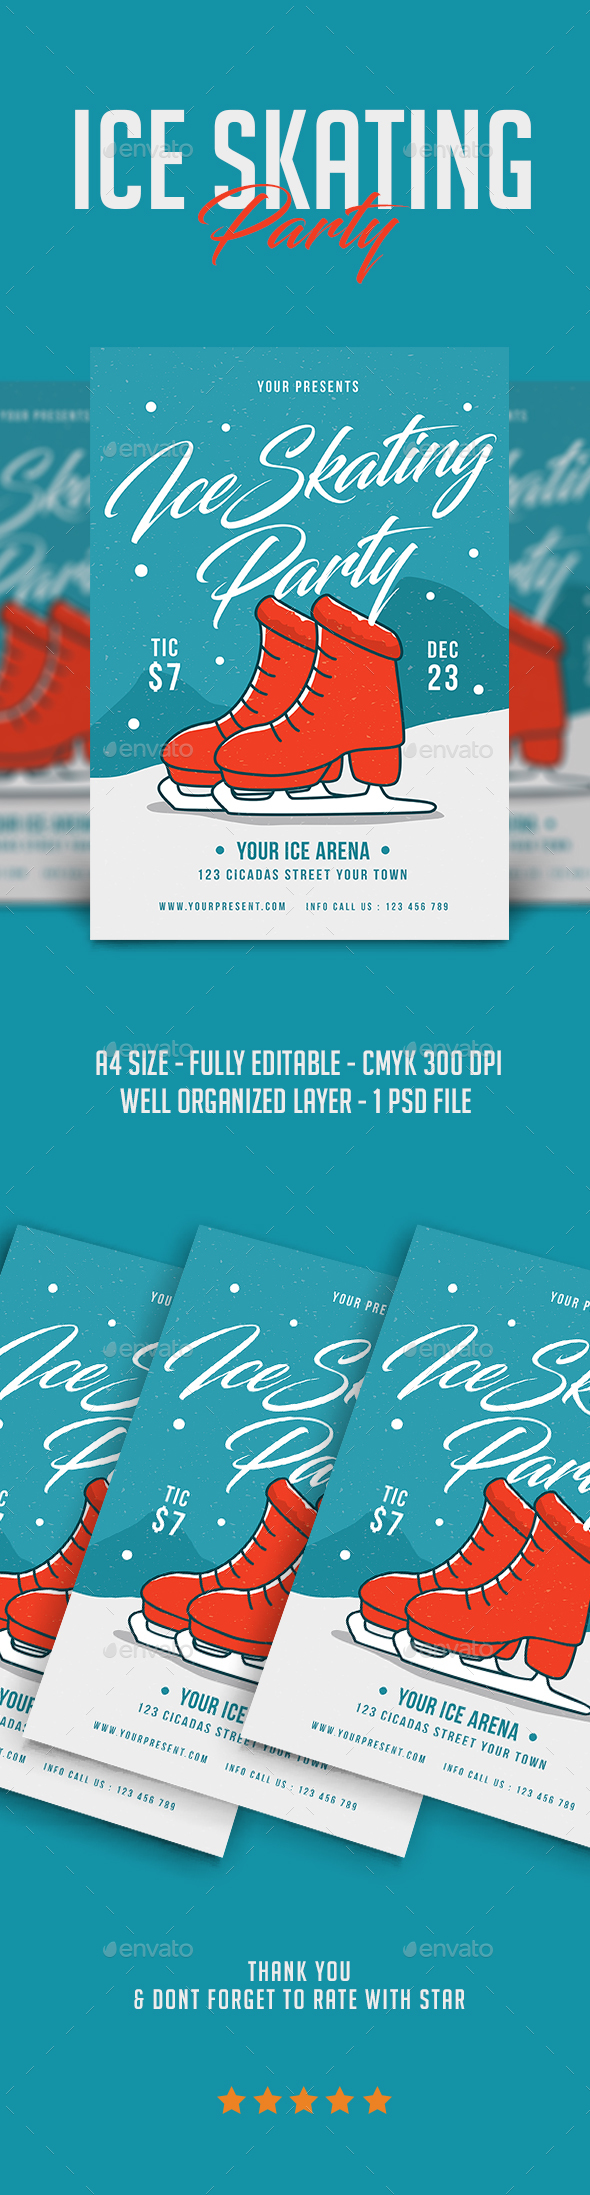 Ice Skating Party Flyer - Flyers Print Templates